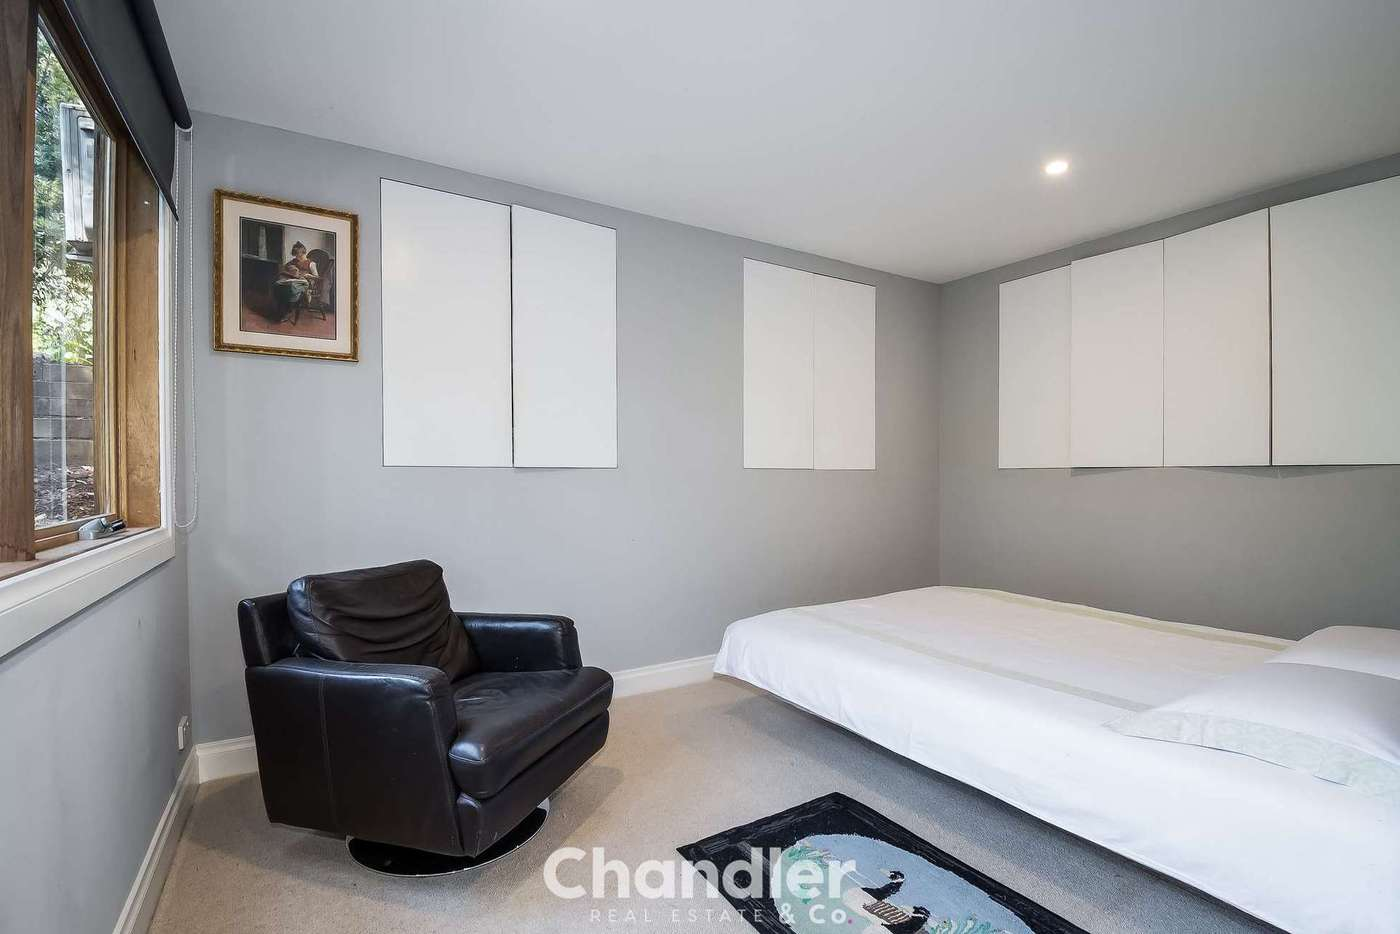 Fifth view of Homely house listing, 22 Birdwood Avenue, Upwey VIC 3158